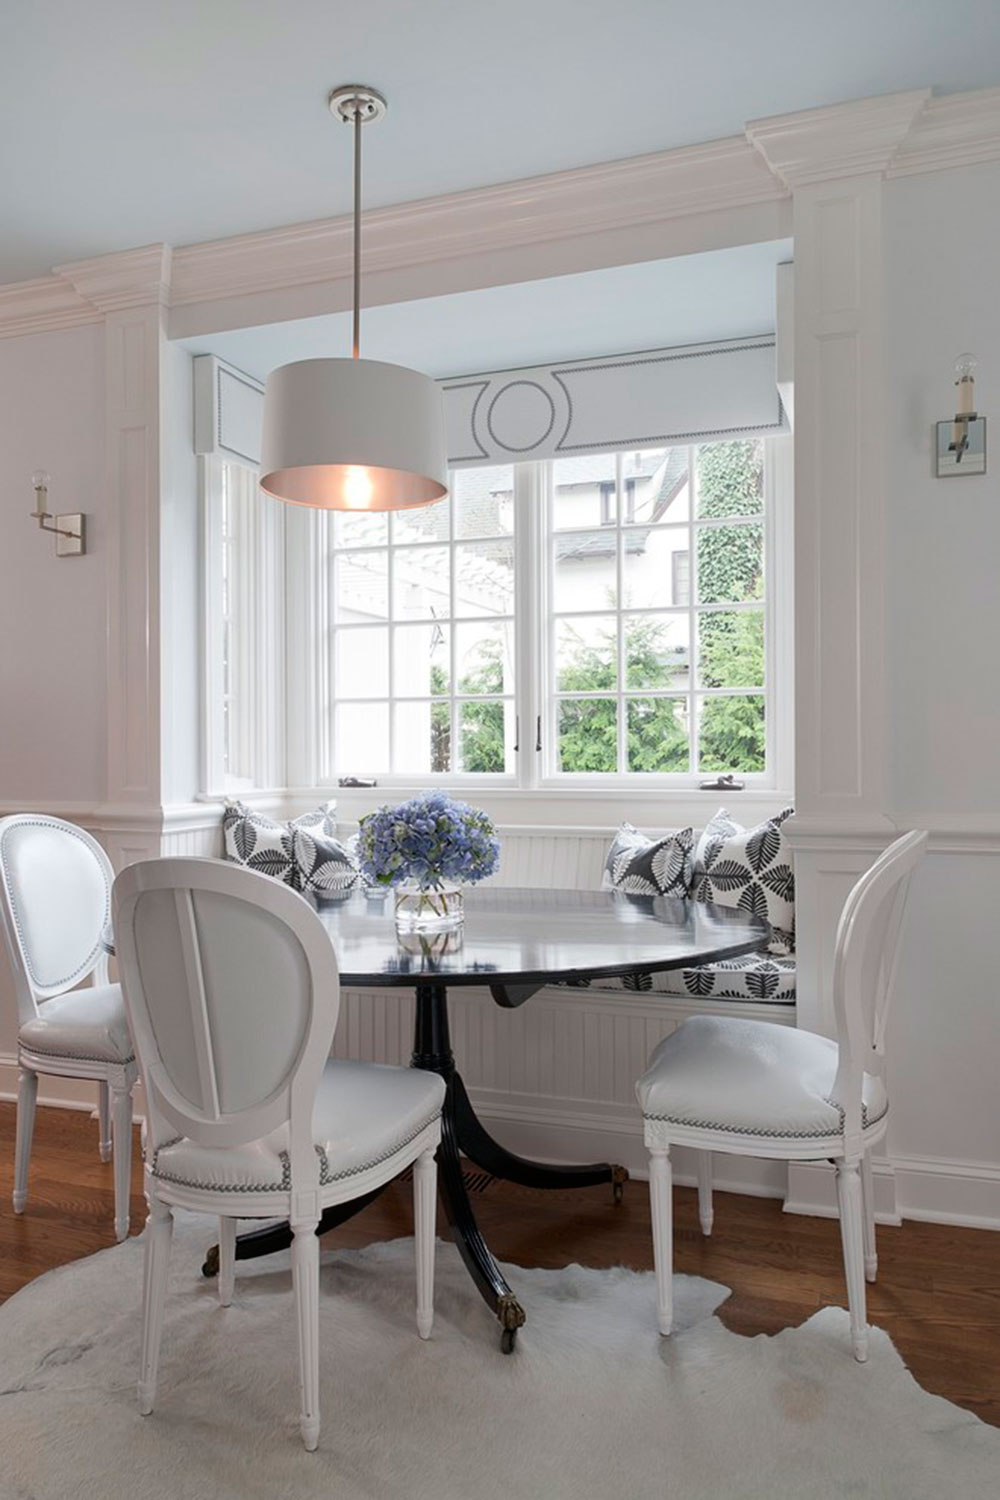 Breakfast-Nook-Design-Ideas-for-Awesome-Mornings9 Breakfast Nook Design-Ideas for Awesome Mornings